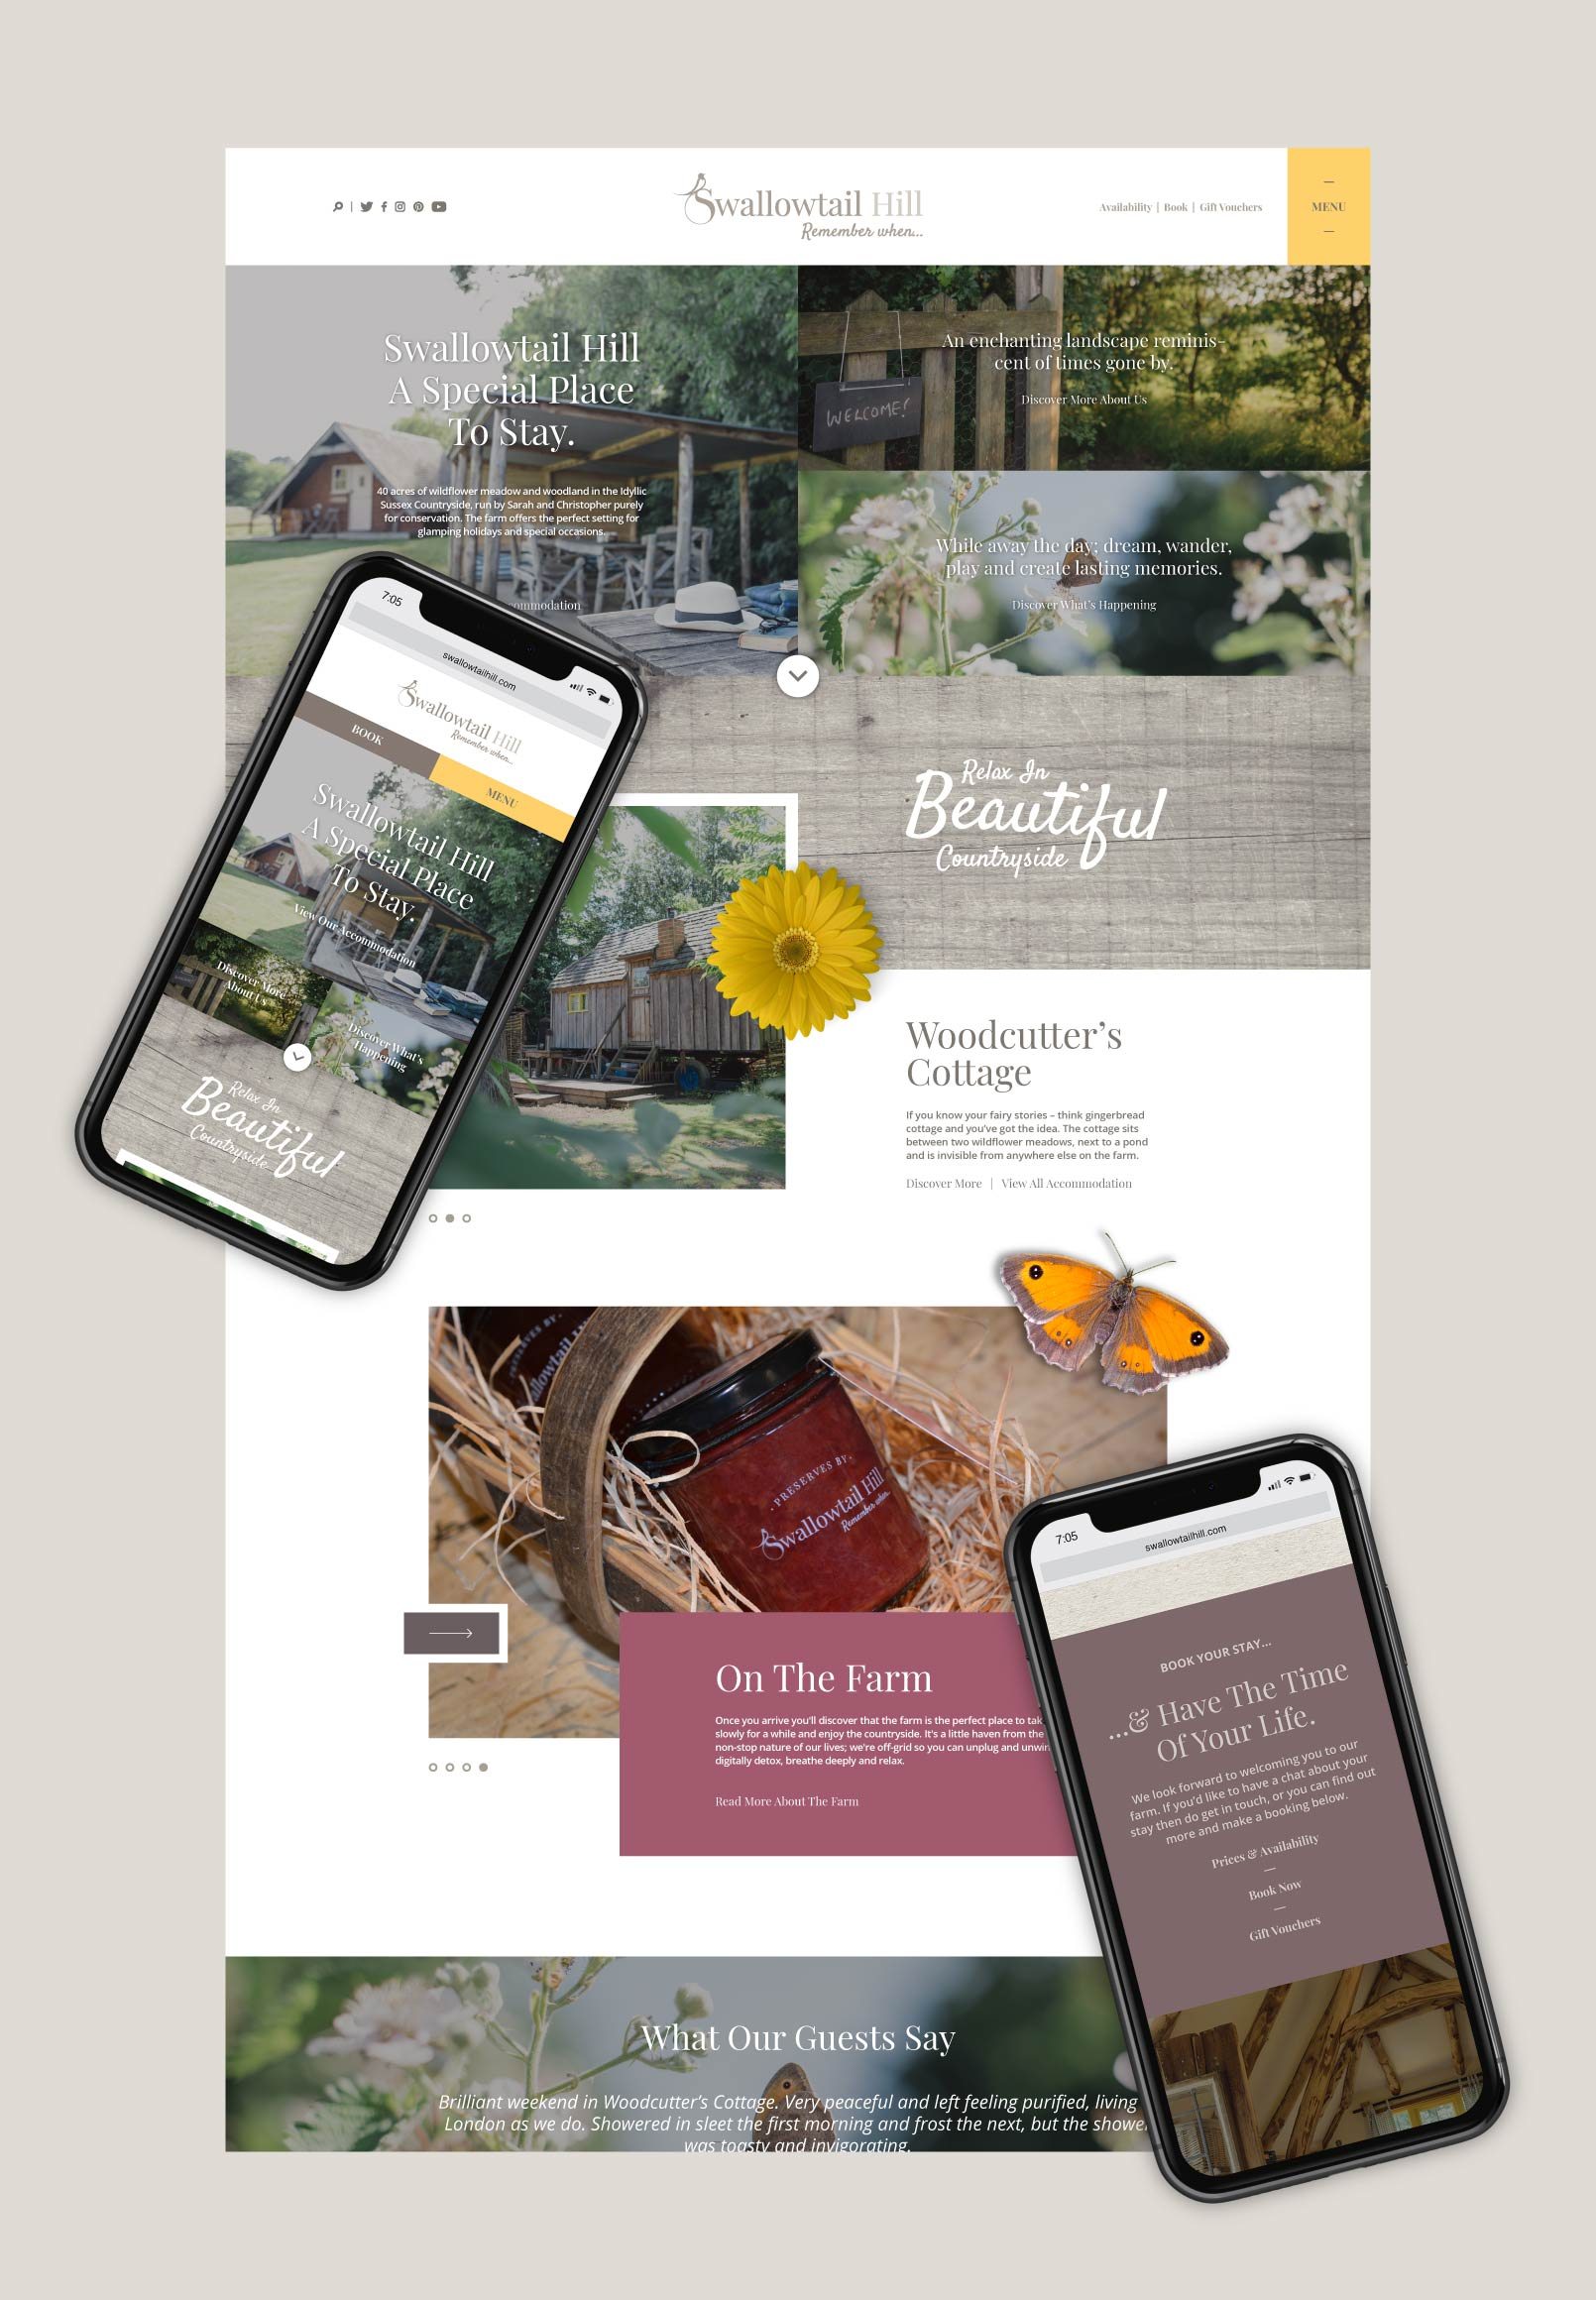 Brand and digital design of the bespoke Swallowtail Hill website.